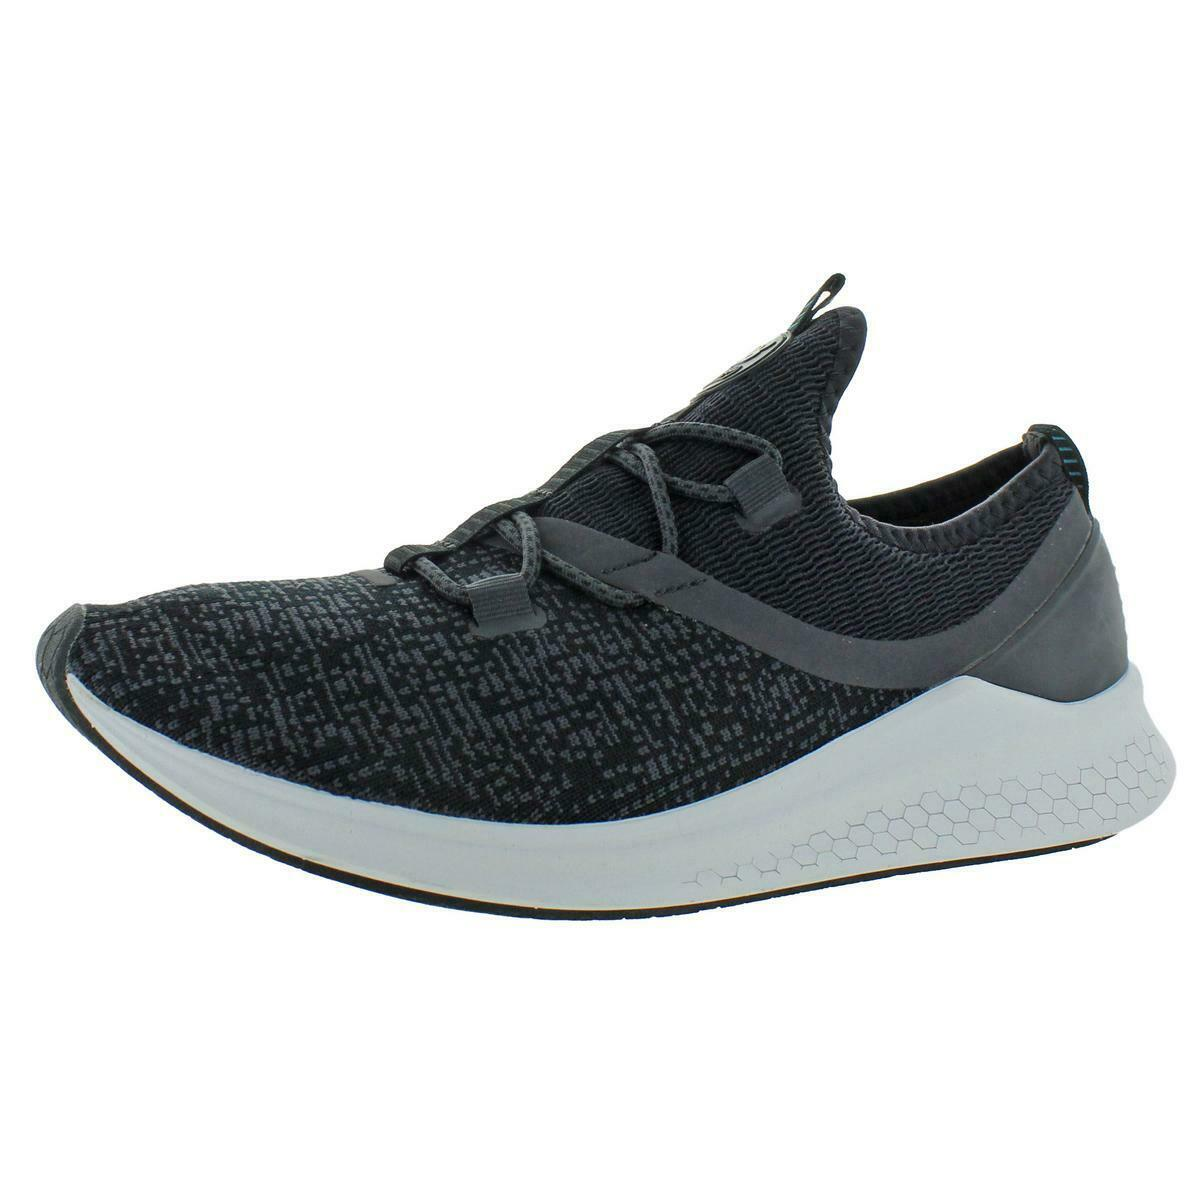 New Balance Mens Black Running shoes Sneakers 9.5 Extra Wide (E+, WW) BHFO 2089